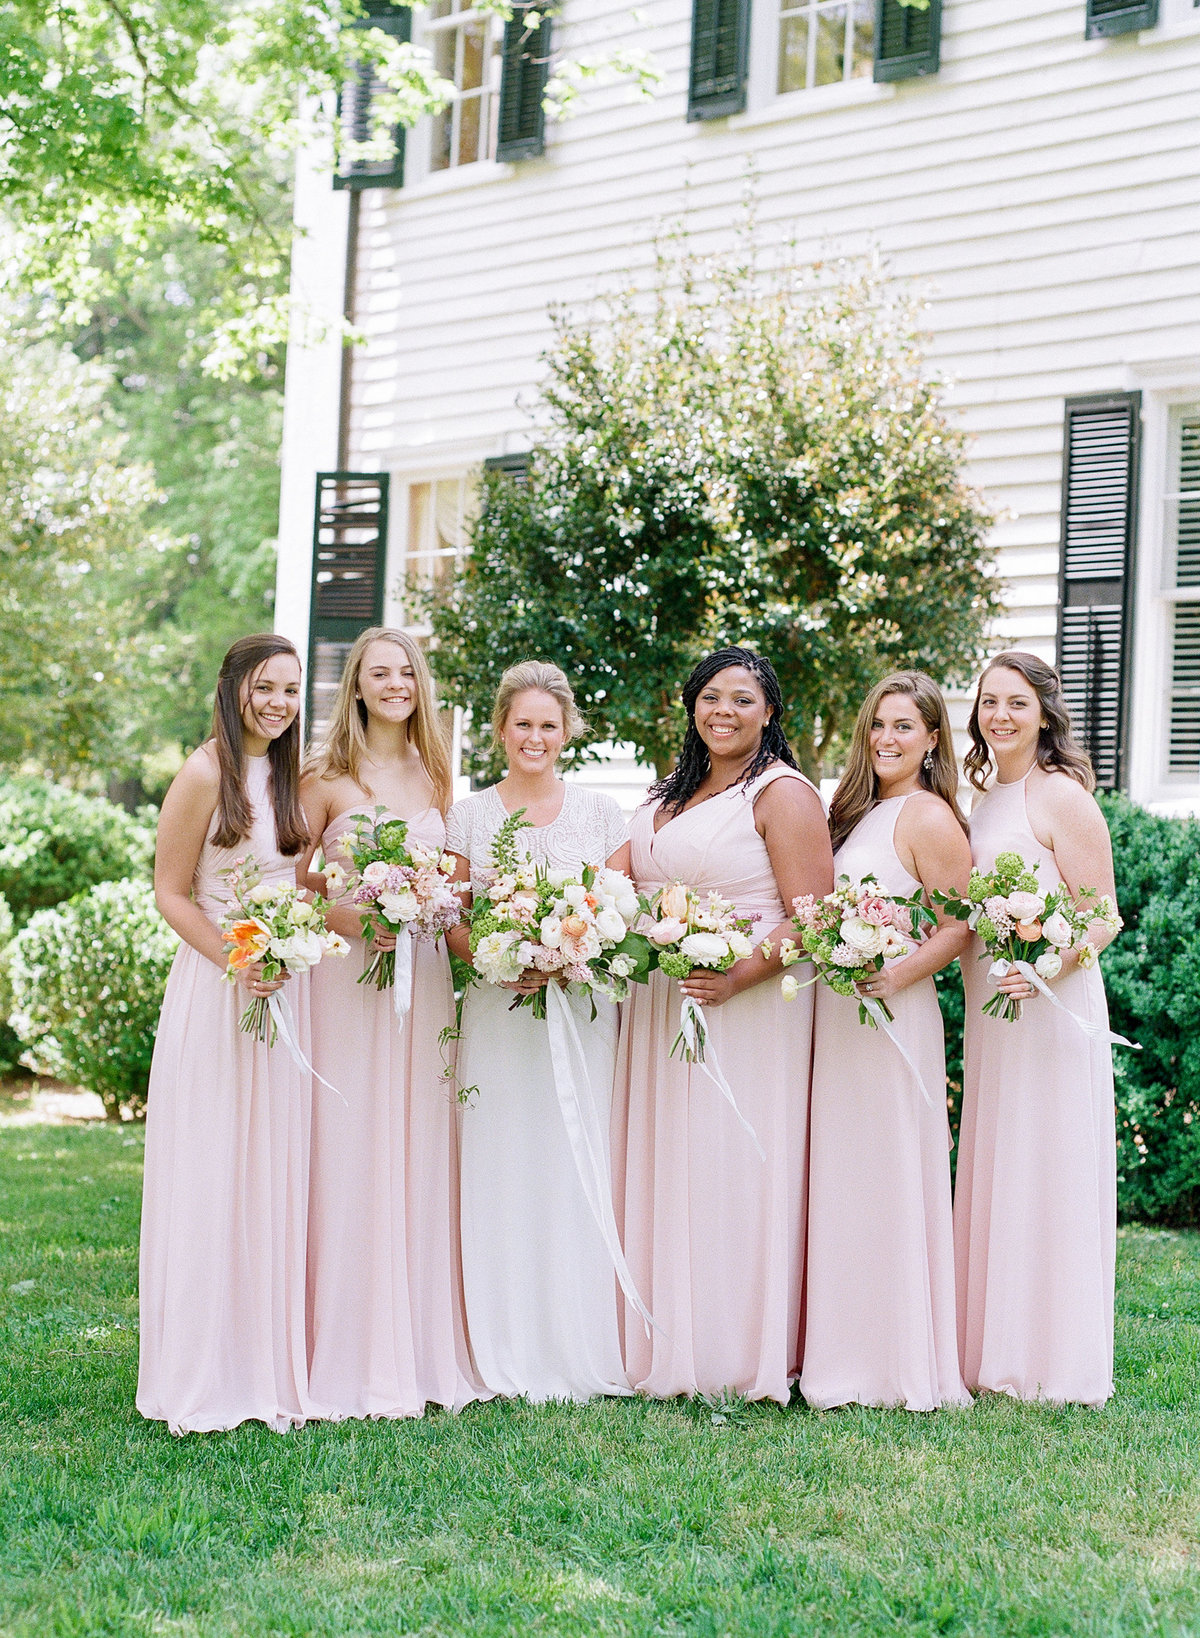 Spring Look for Bridesmaids